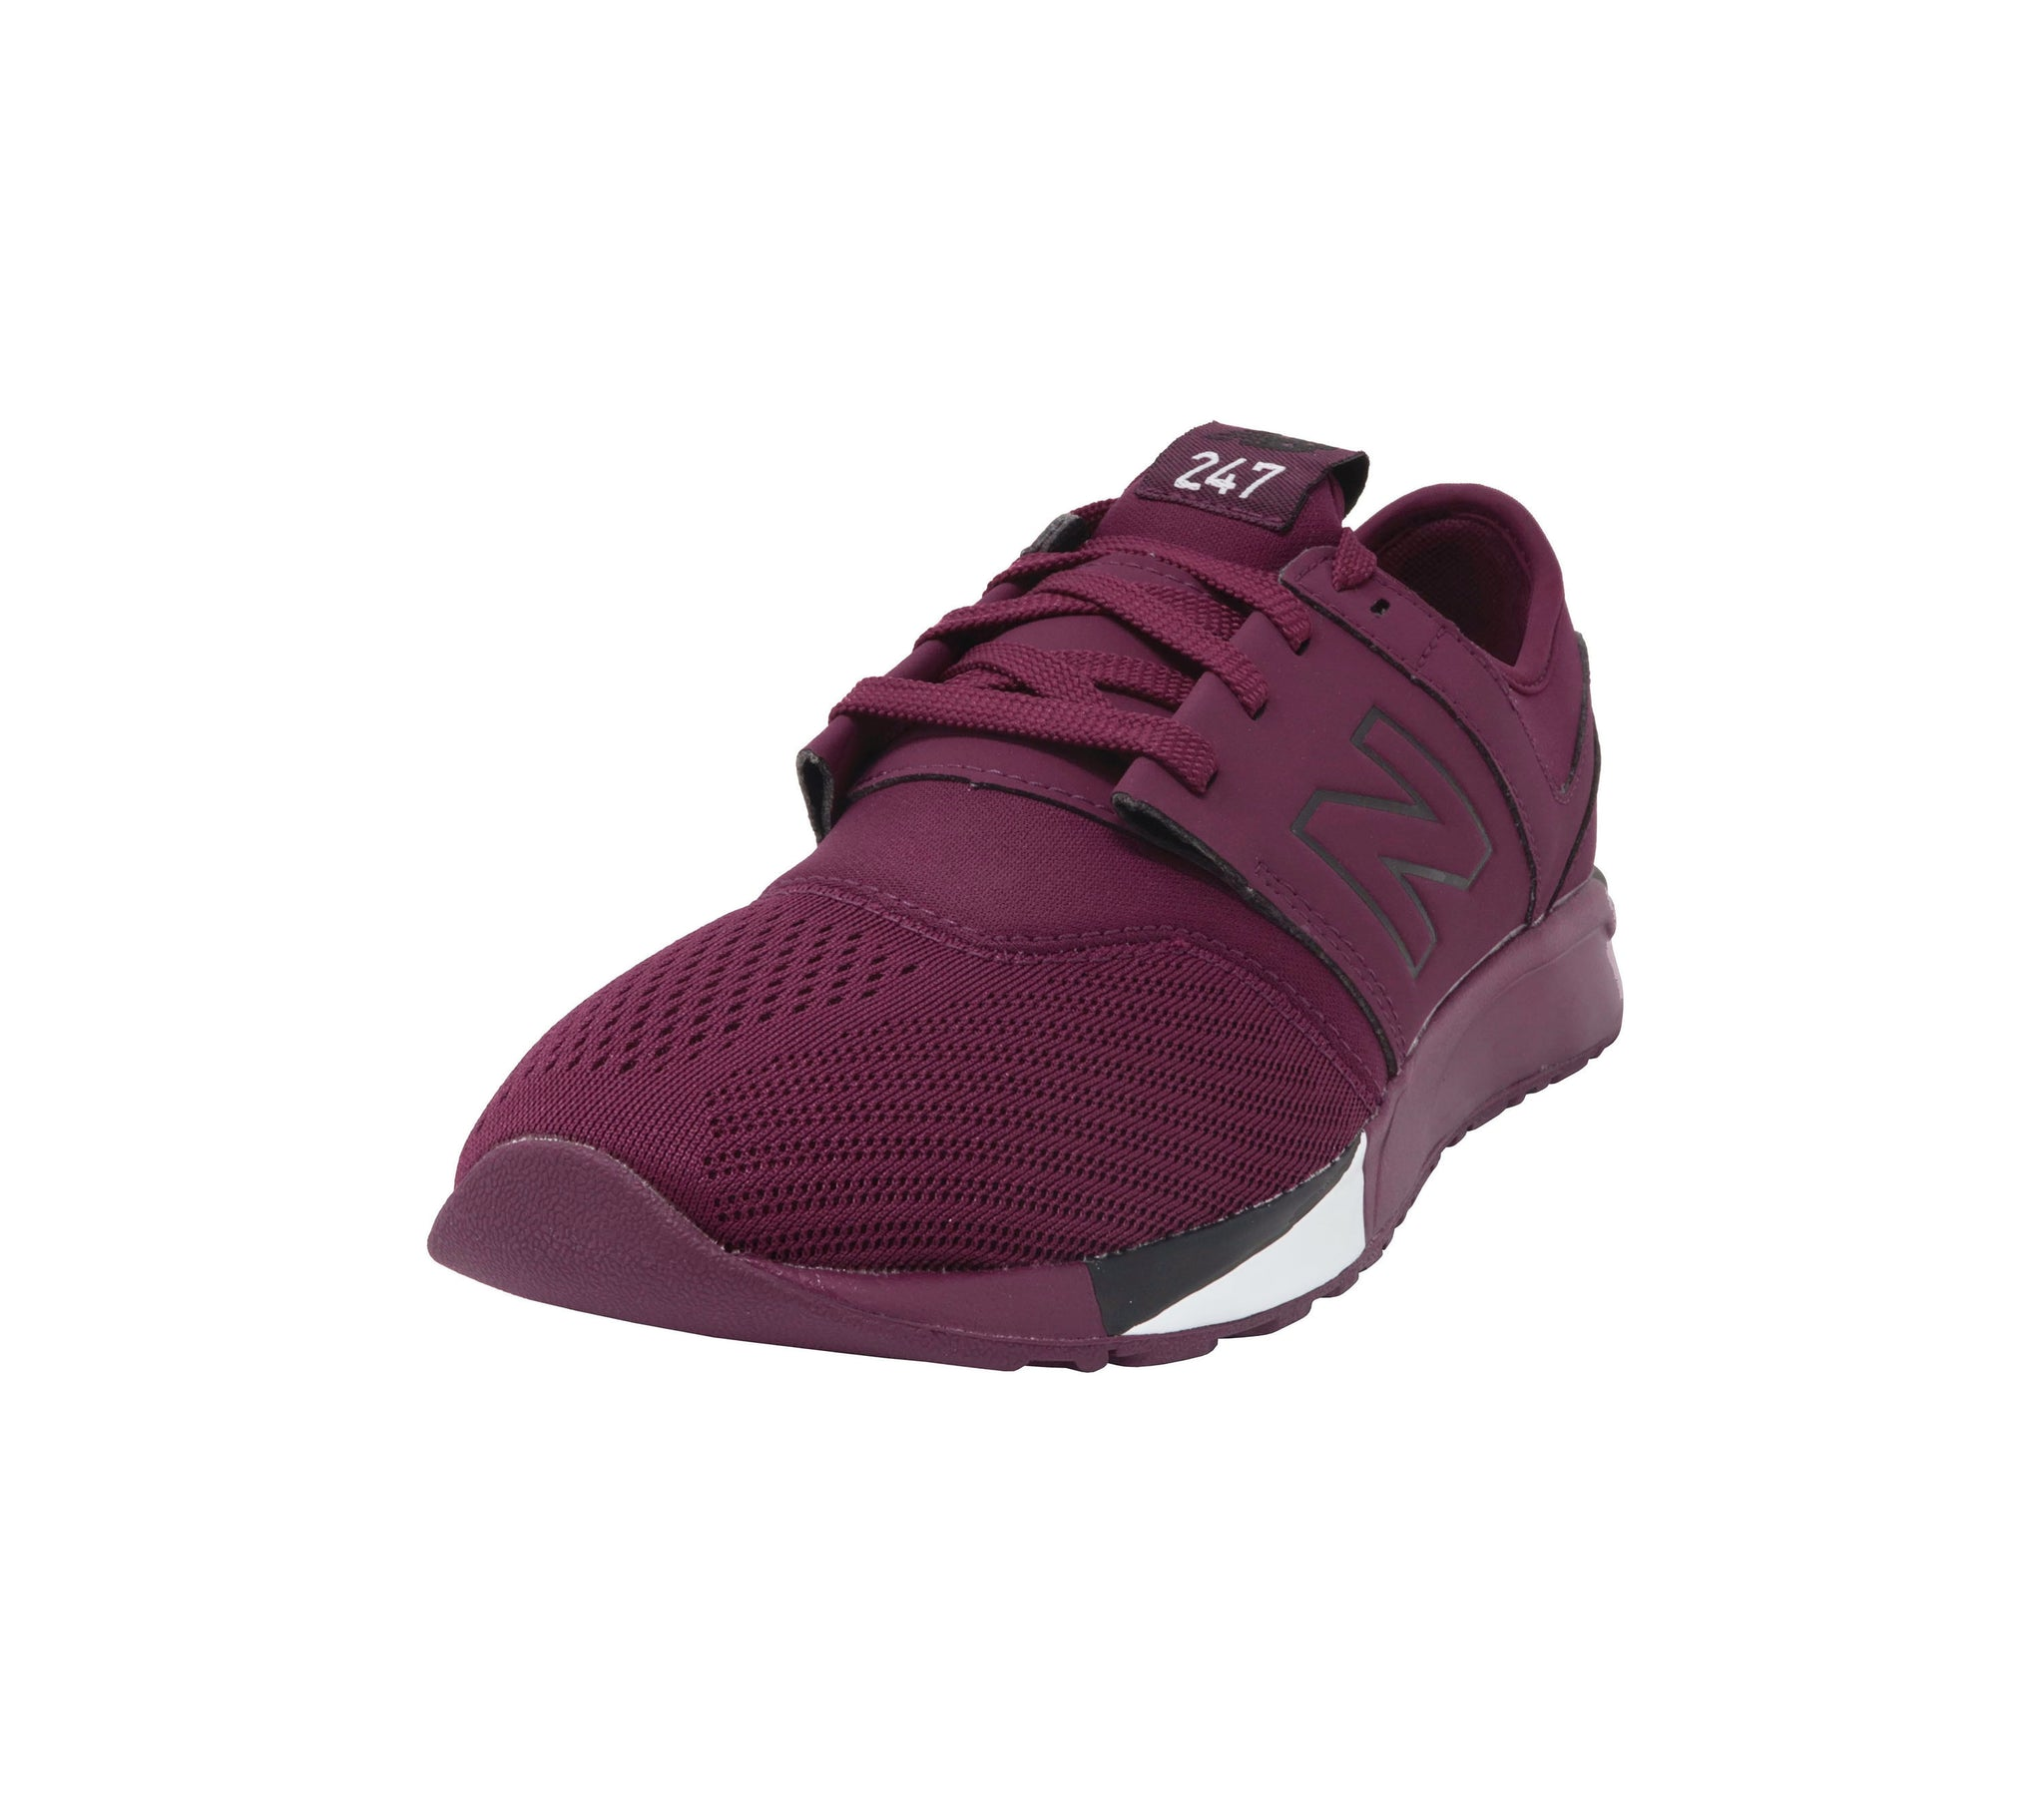 New Balance 247 Burgundy/Black Youth Shoes